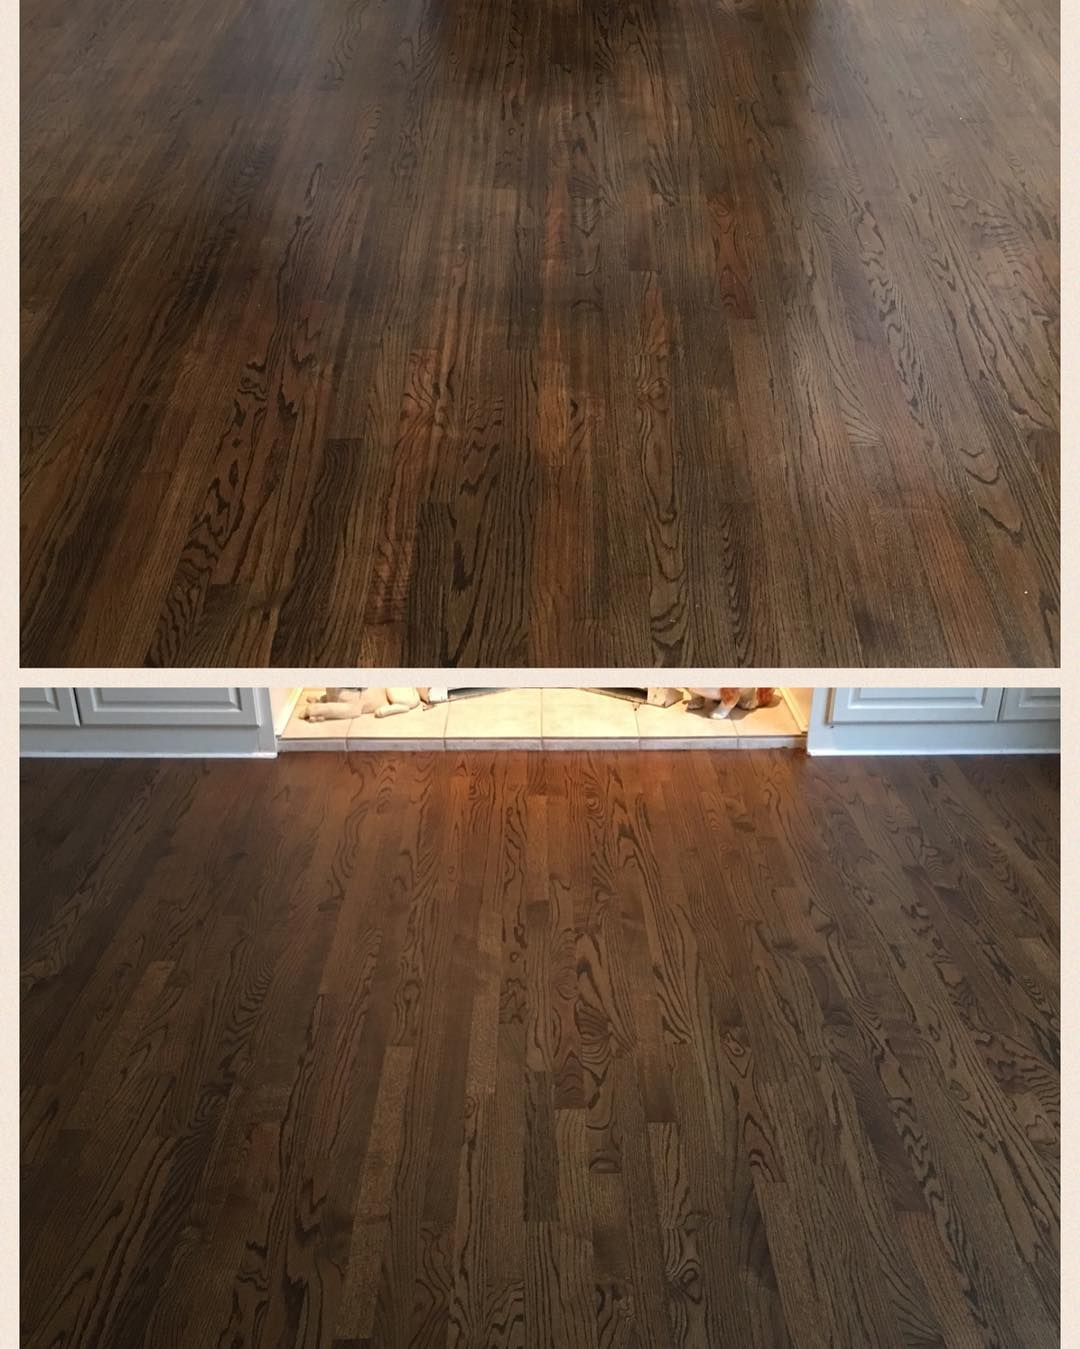 We had the pleasure of swooping in to save this floor from a seemingly bad refinish, with lots of belt scratches which leads to stain inconsistency, just days before we arrived! With our knowledge and experience, we are able to provide our customers with a beautiful and sustainable product for years to come! Please contact us for a free estimate. #transformationtuesday #oldtogold #hardwoodfloors #hardwoodflooring #oak #redoak #grandrapids #michigan #grmi #bona #jacobean #traffic #bonatraffic #beautiful #fresh #new #nwfa